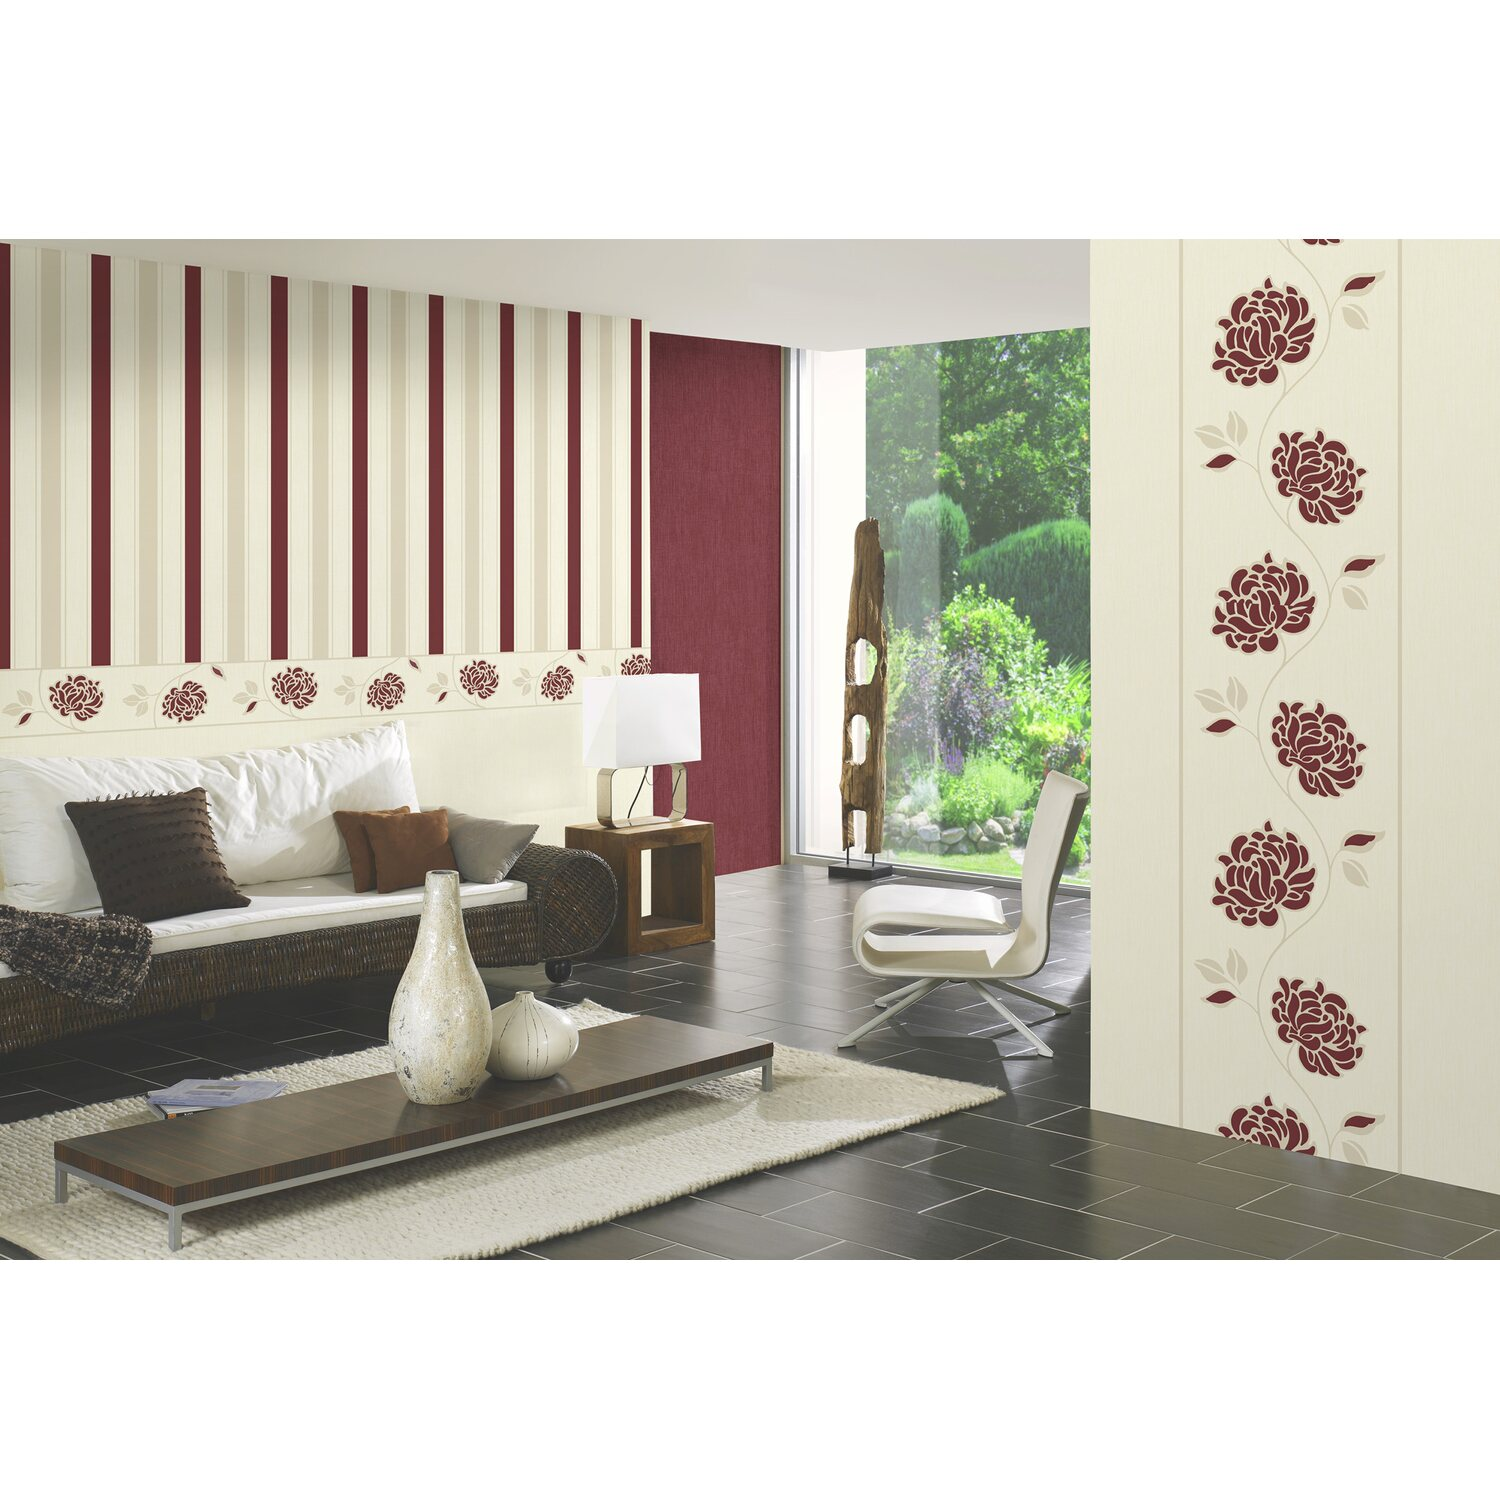 brigitte home vliestapete blumenranke rot kaufen bei obi. Black Bedroom Furniture Sets. Home Design Ideas